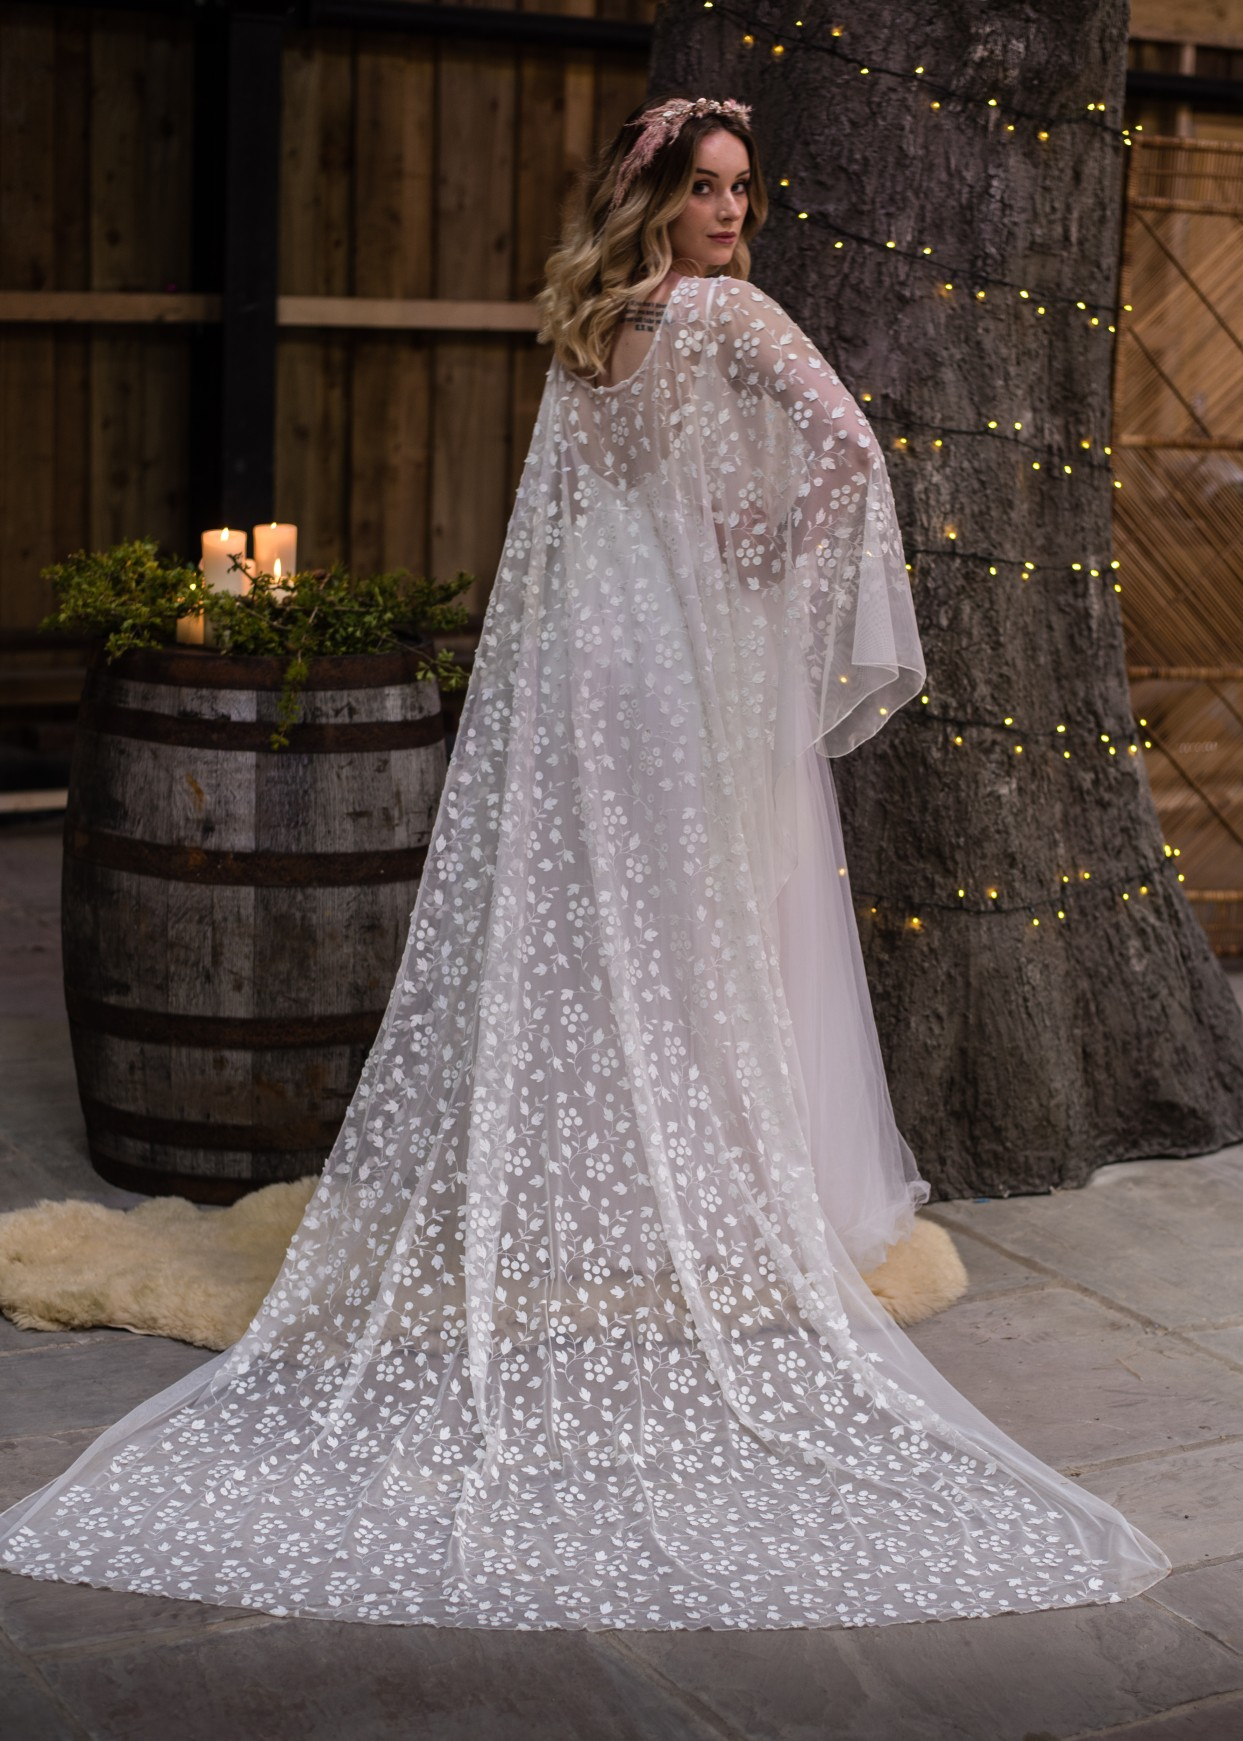 intricate wedding veil from bexbride - eclectic brides - wedding cape with sleeves - alternative wedding wear for the unconventional bride